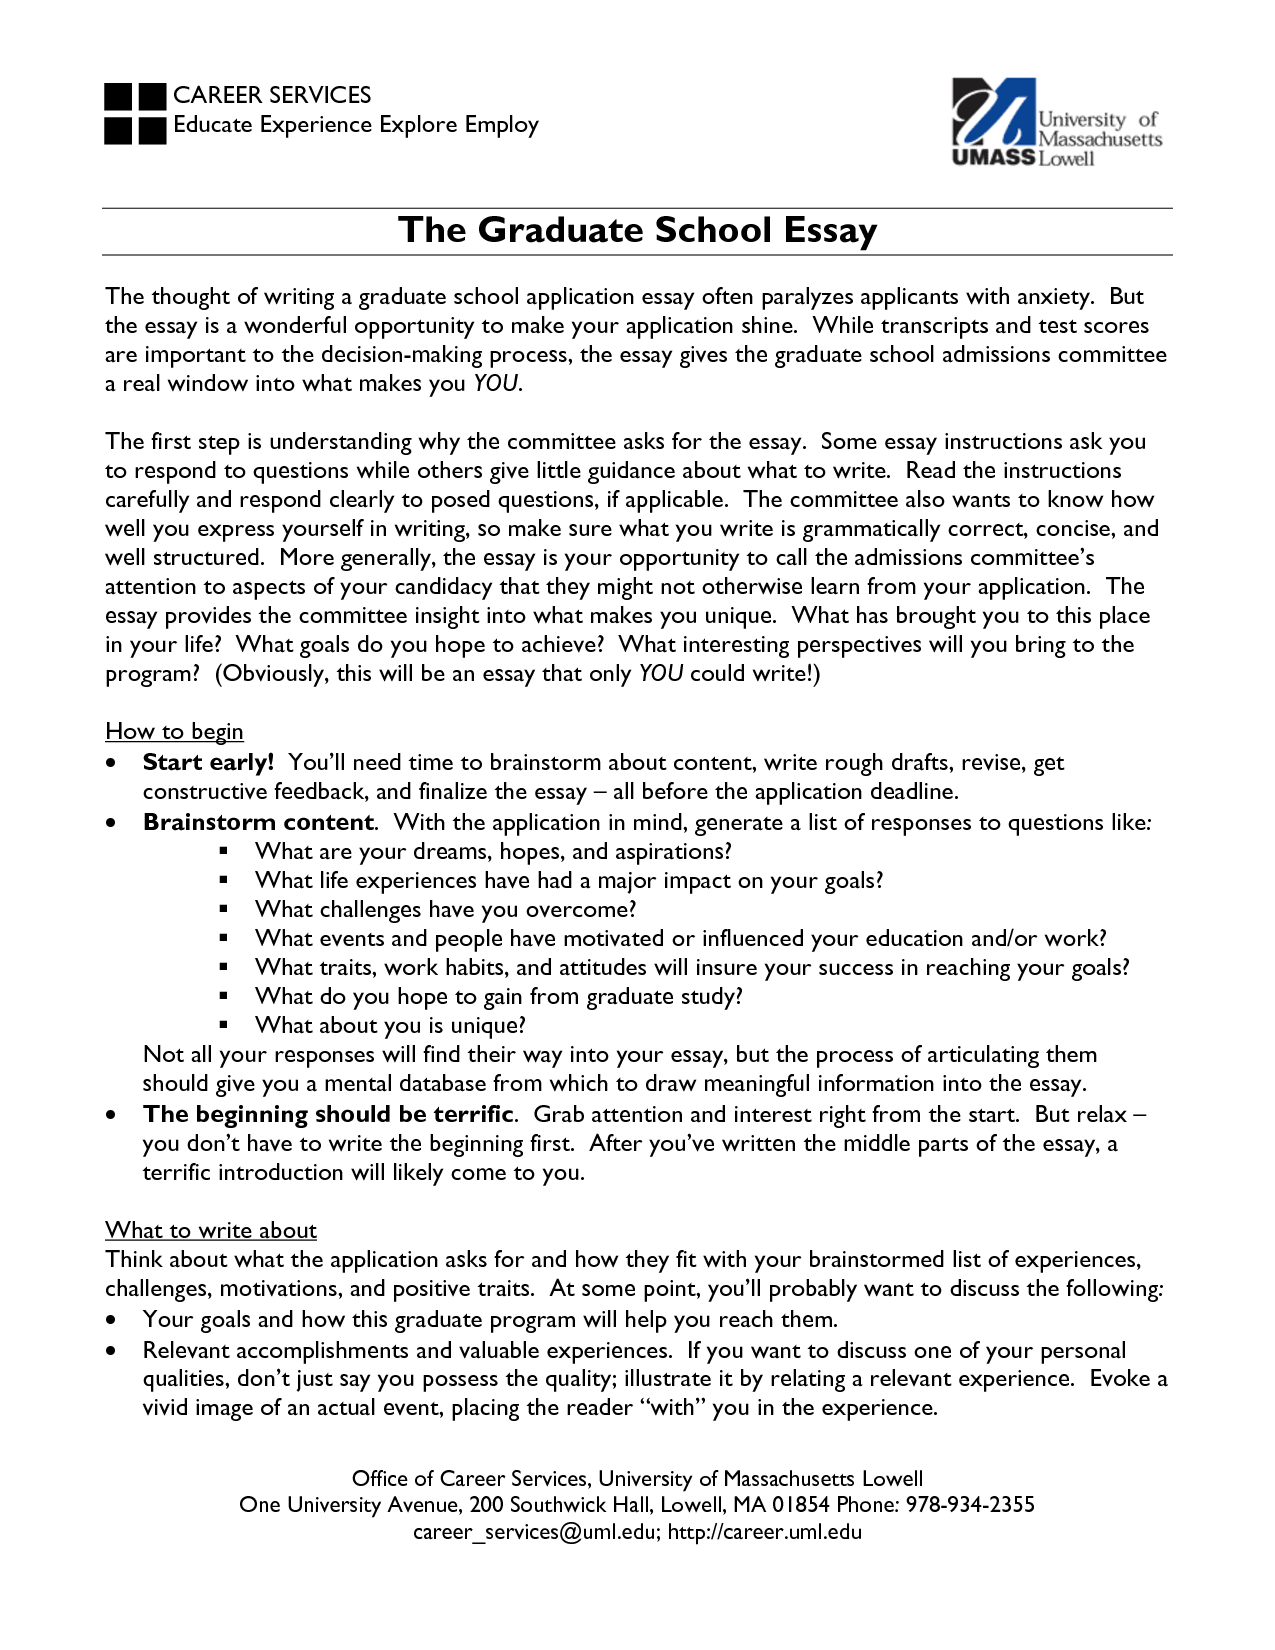 queens college graduate application essay Thesis custom css menu queens college undergraduate admissions essay writing programs order resume online restaurants.